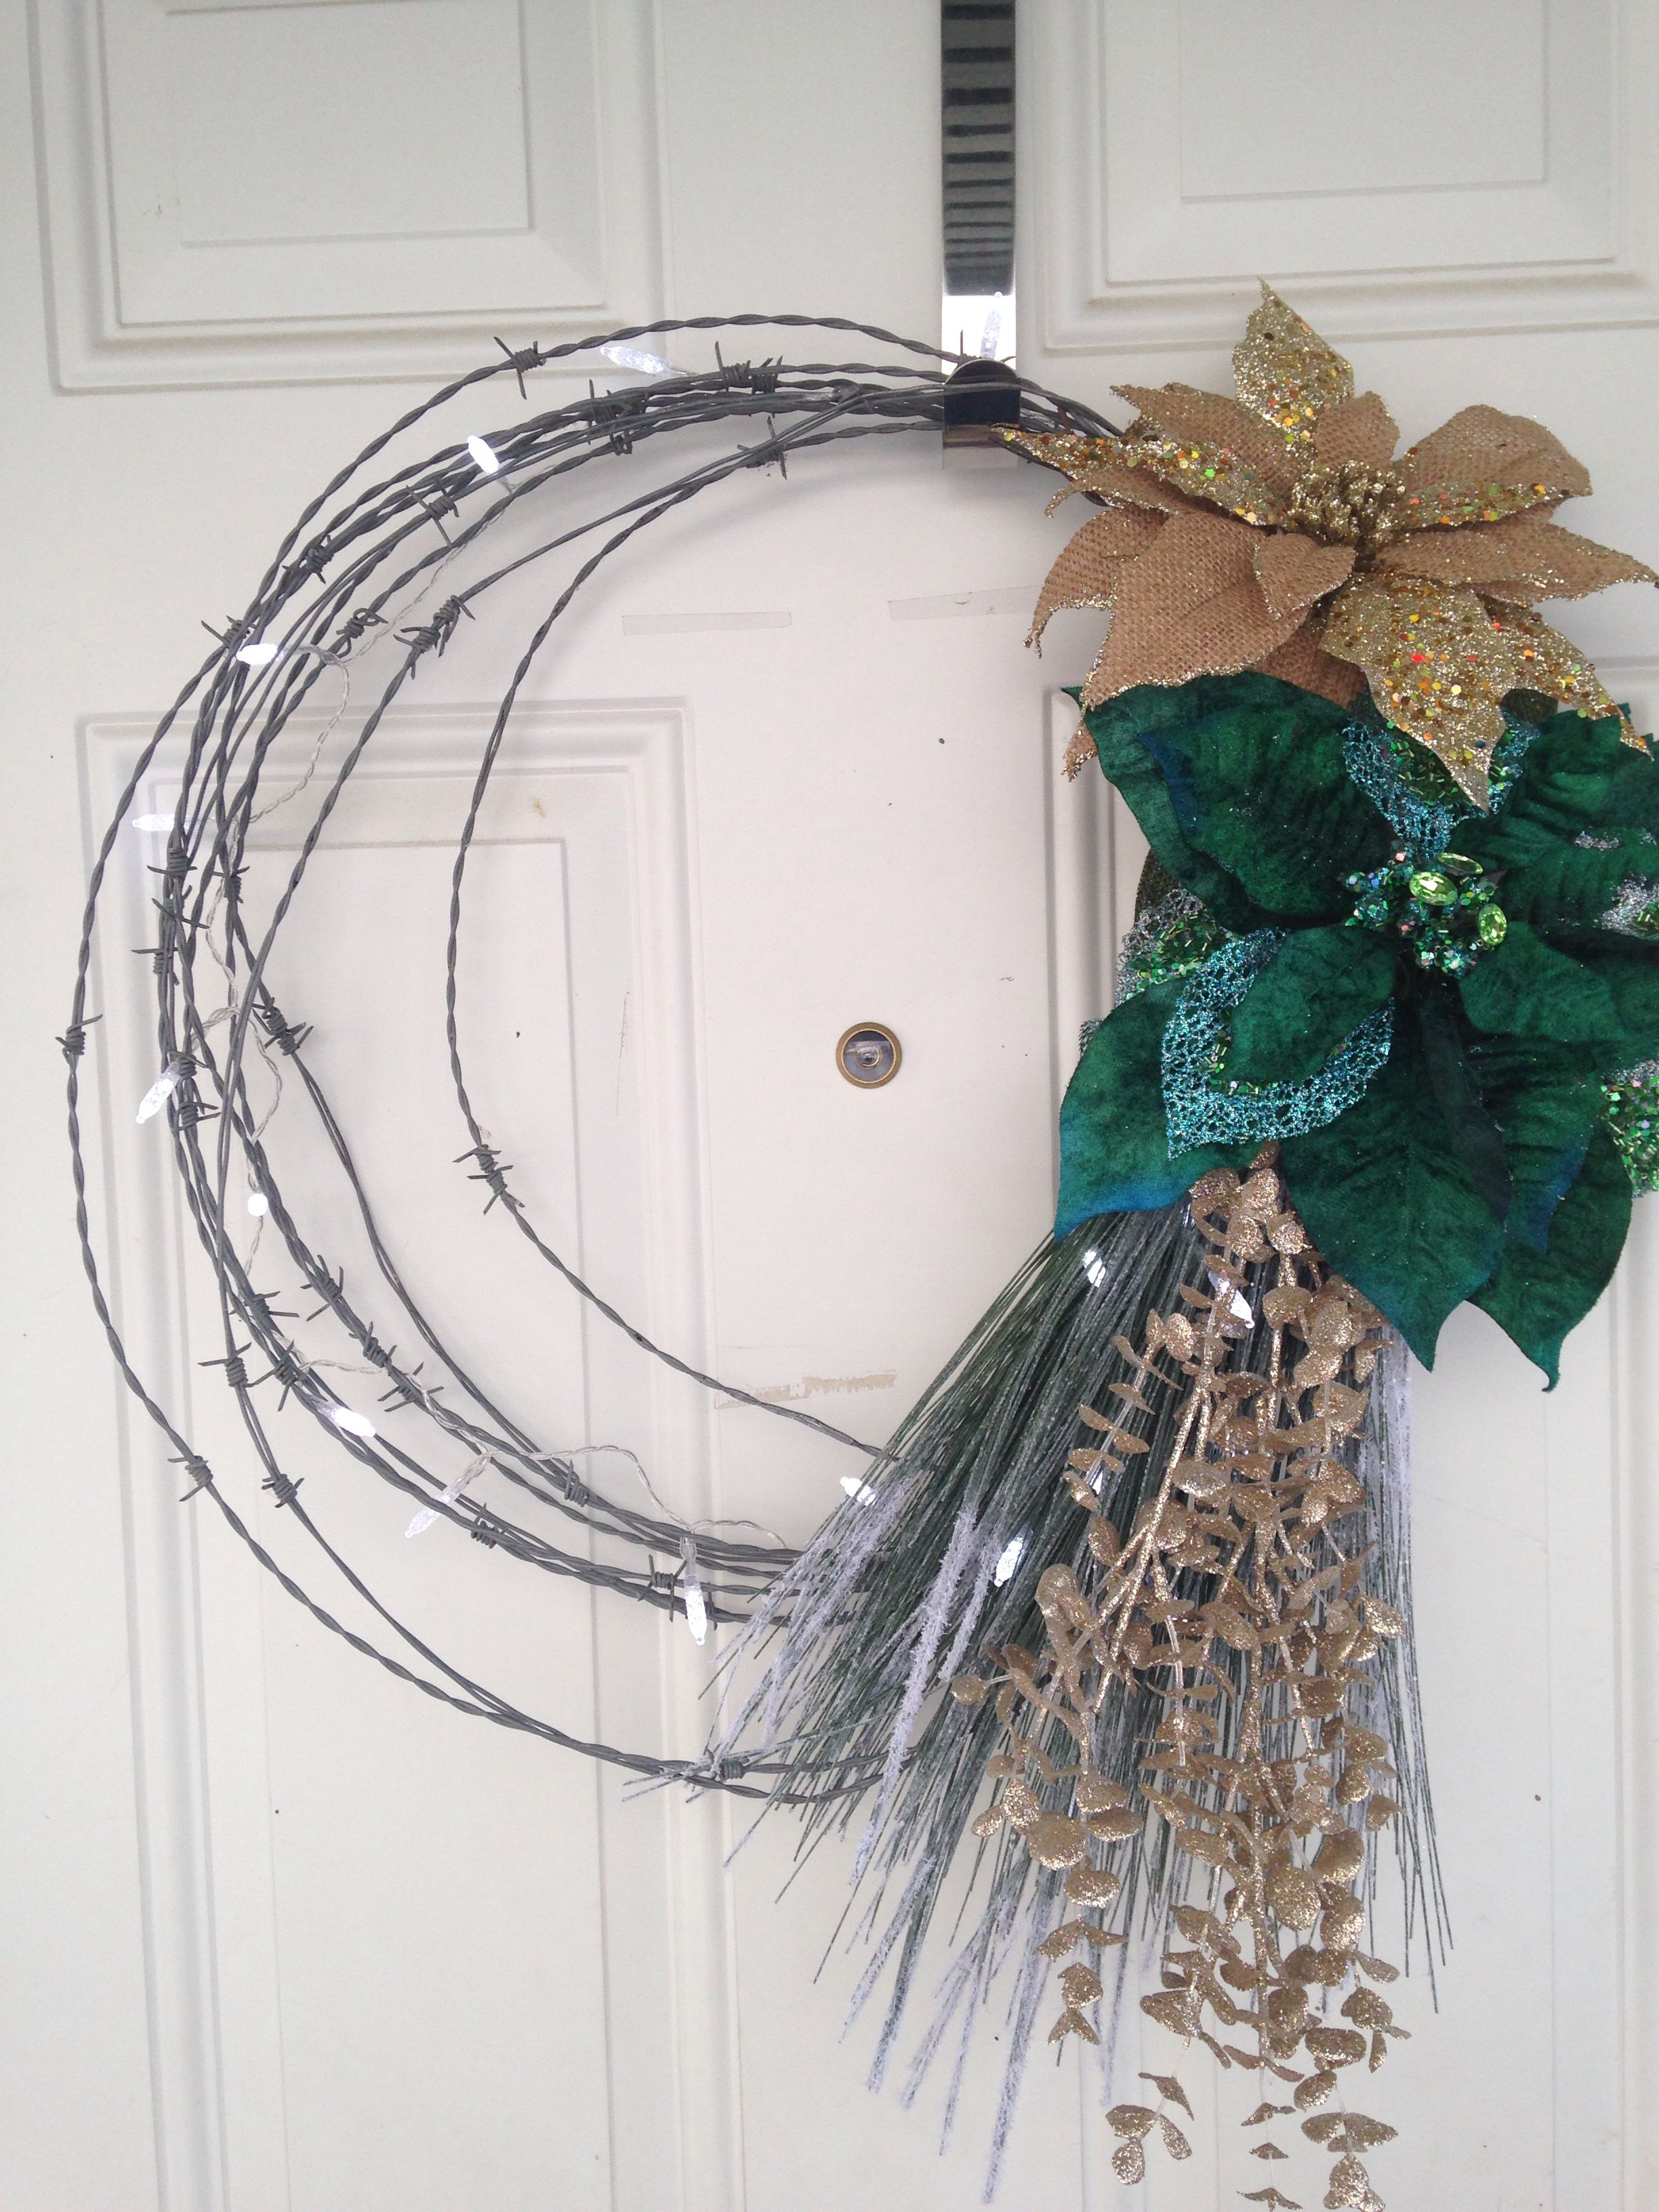 Barb Wire Wreath With Burlap - Wiring